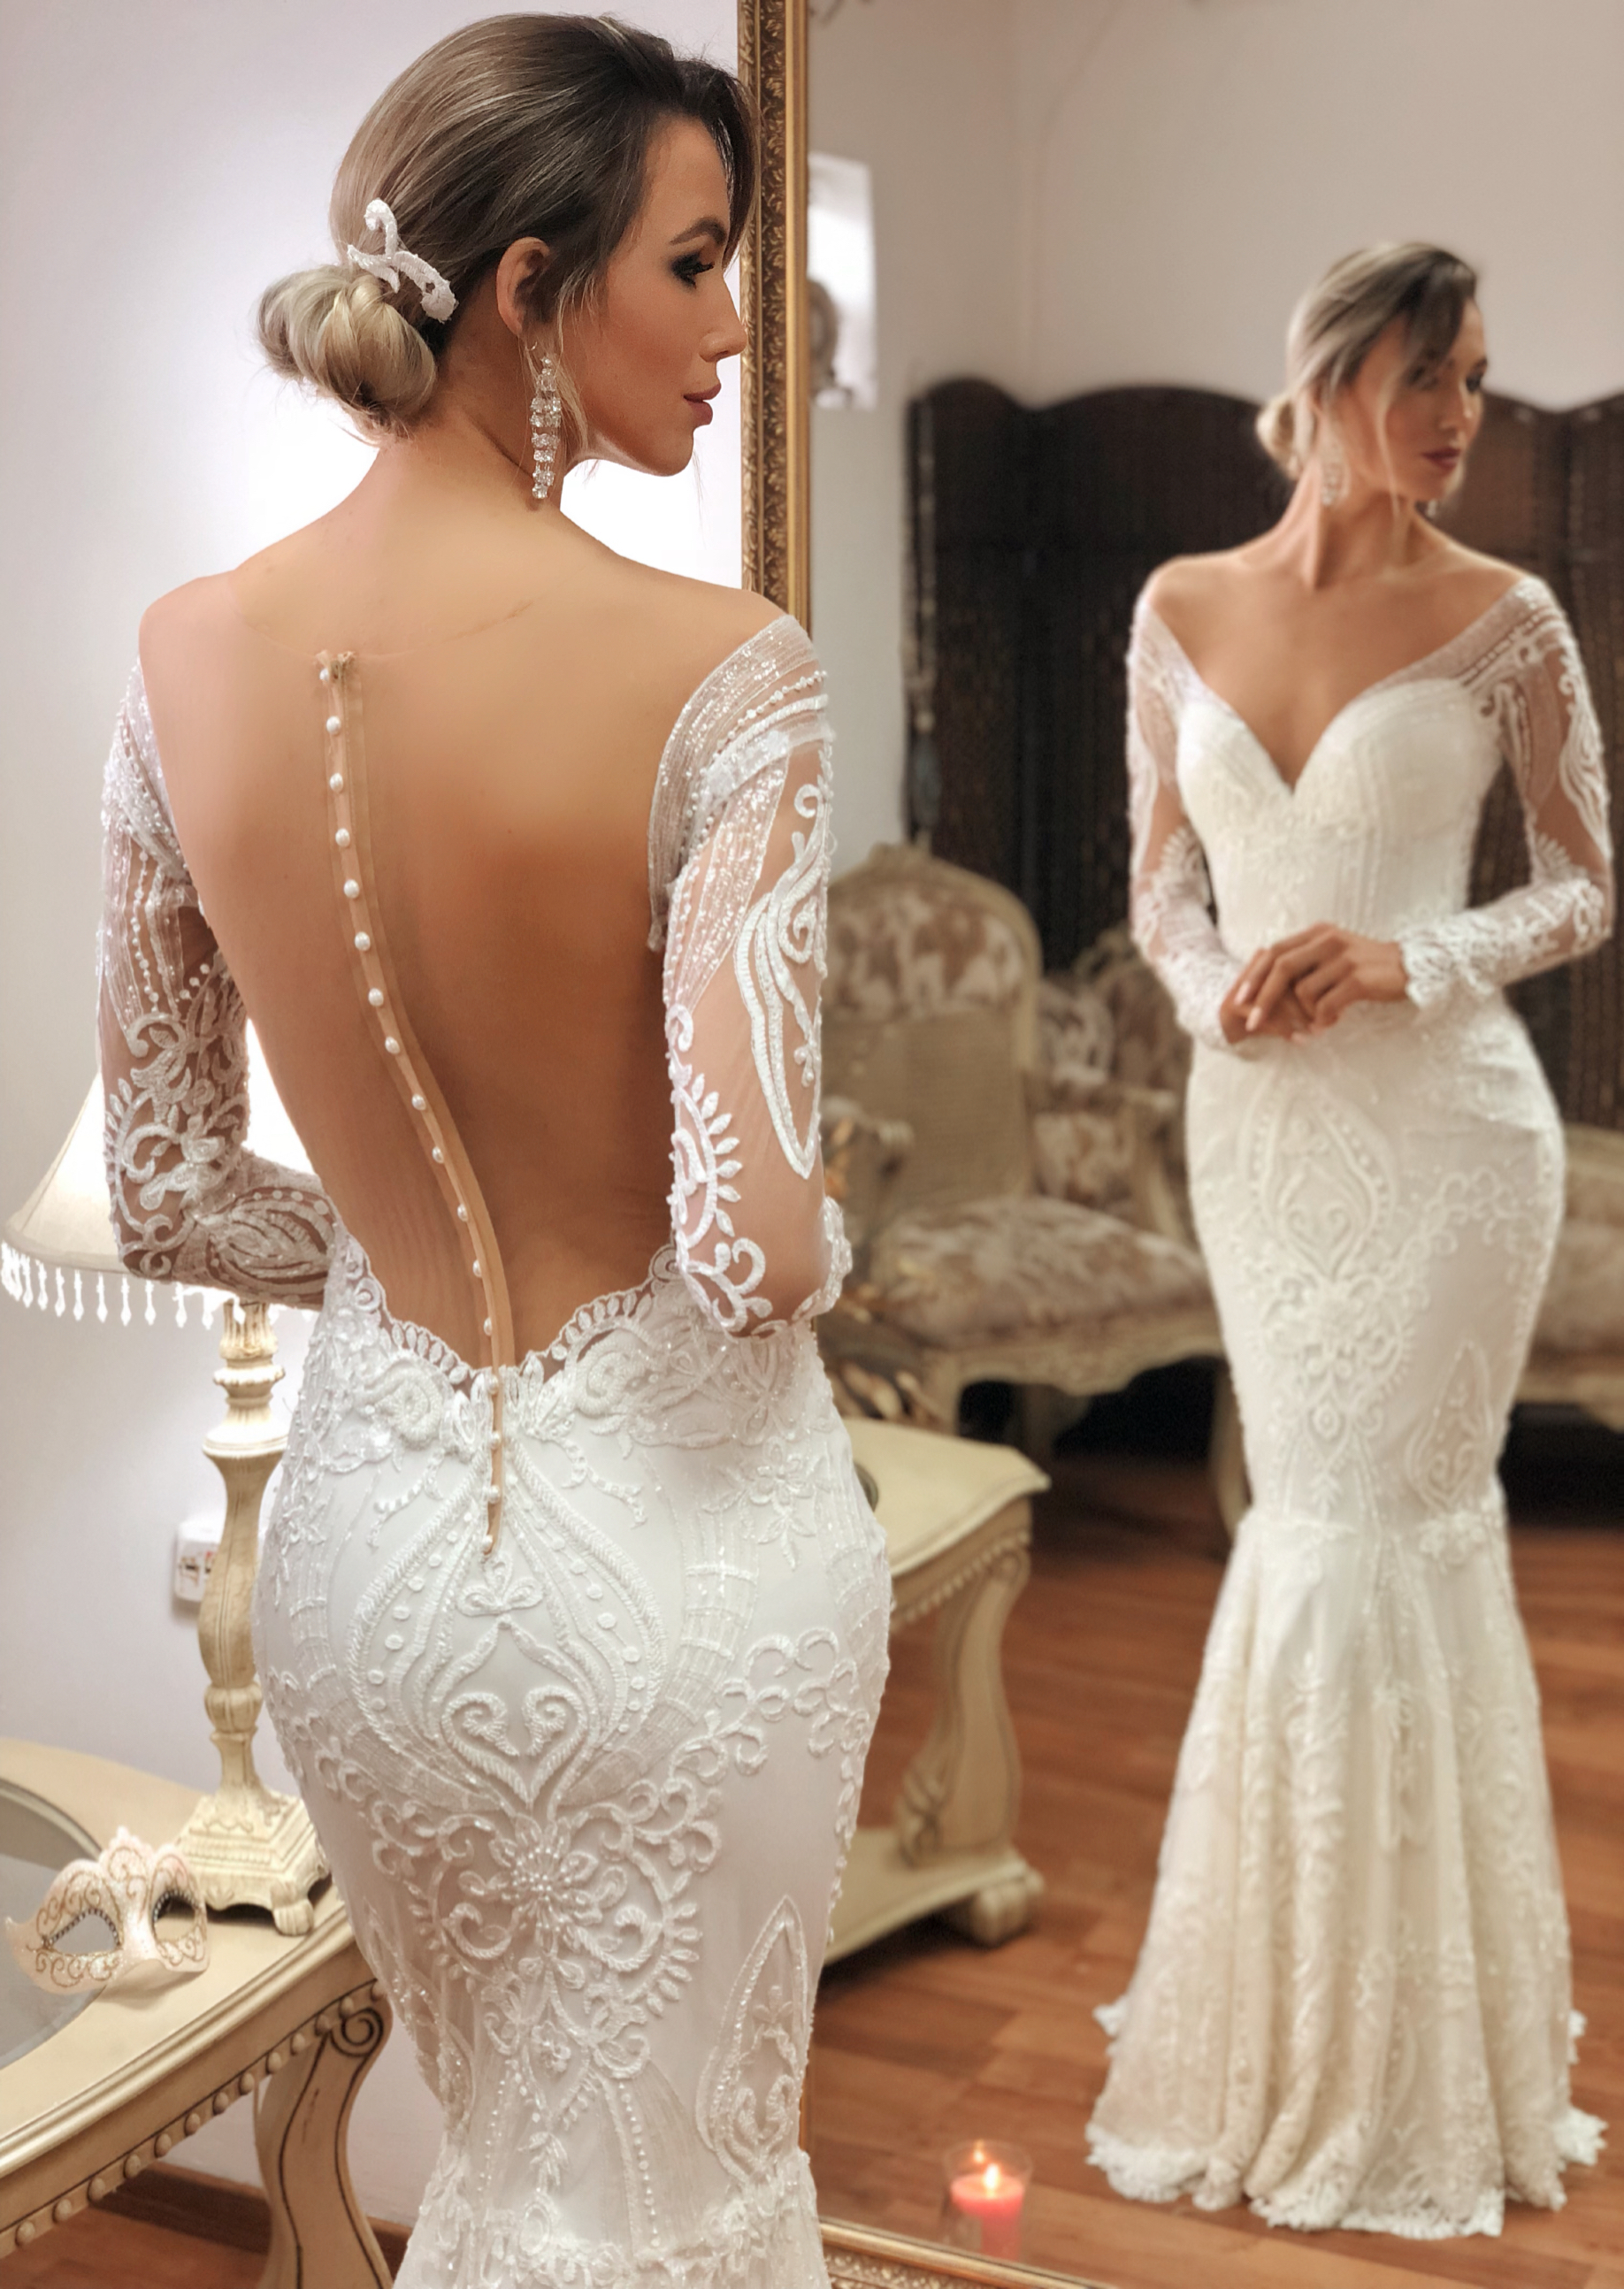 34d1f8952c Hayworth by Naama   Anat Couture - The Blushing Bride boutique in Frisco